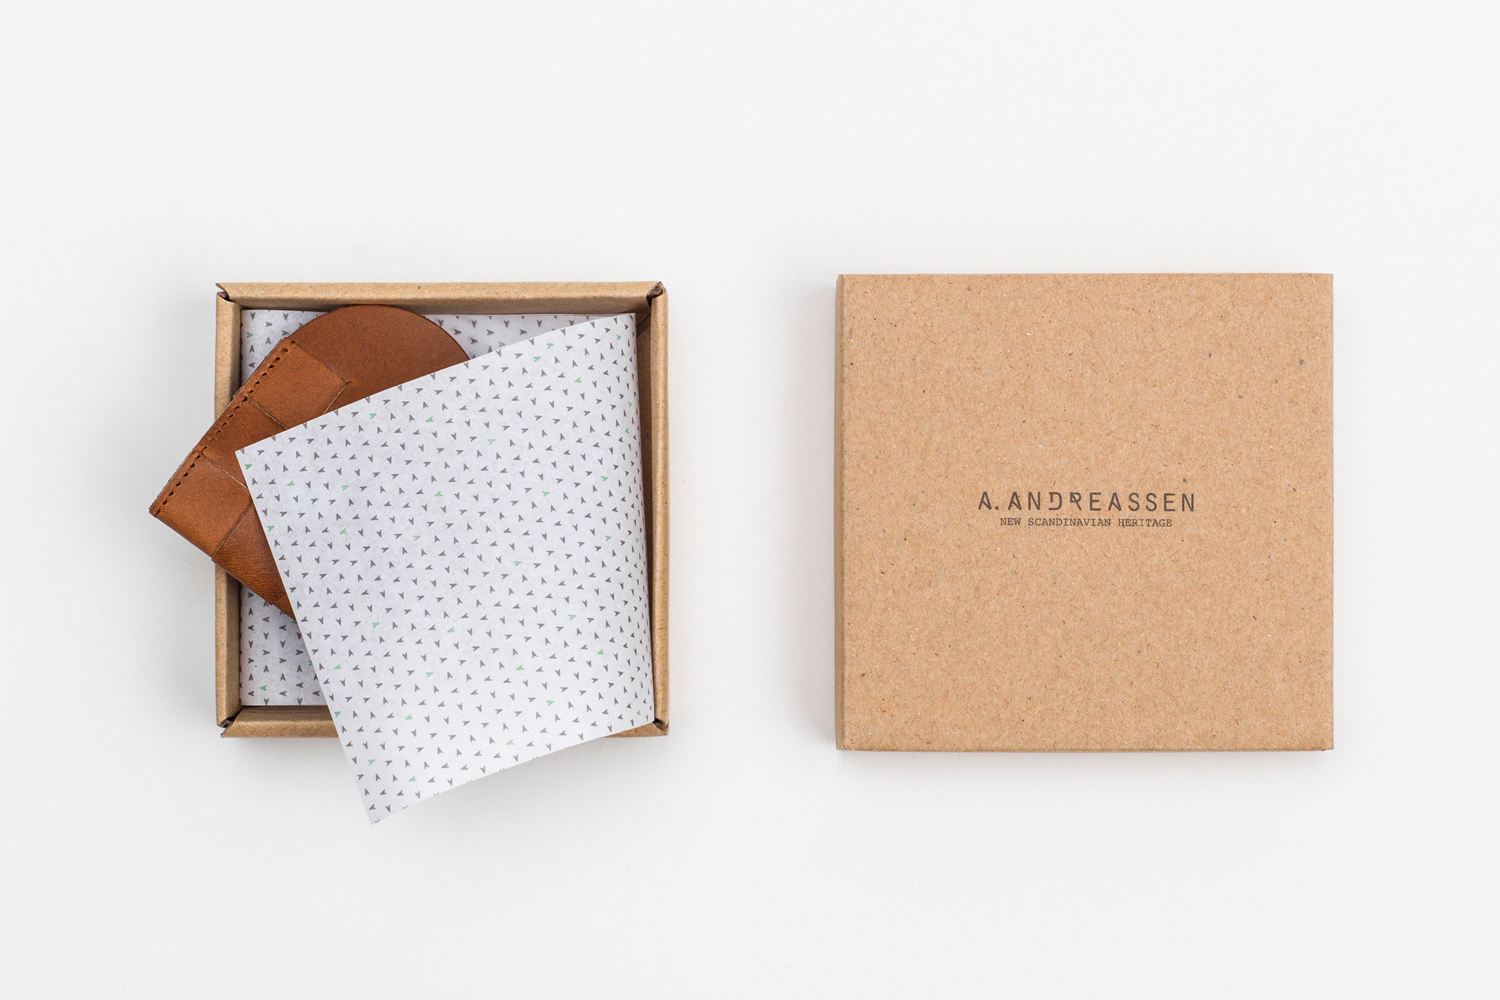 Brand identity and package design by the London office of Bond for new Scandinavian lifestyle brand A. Andreassen